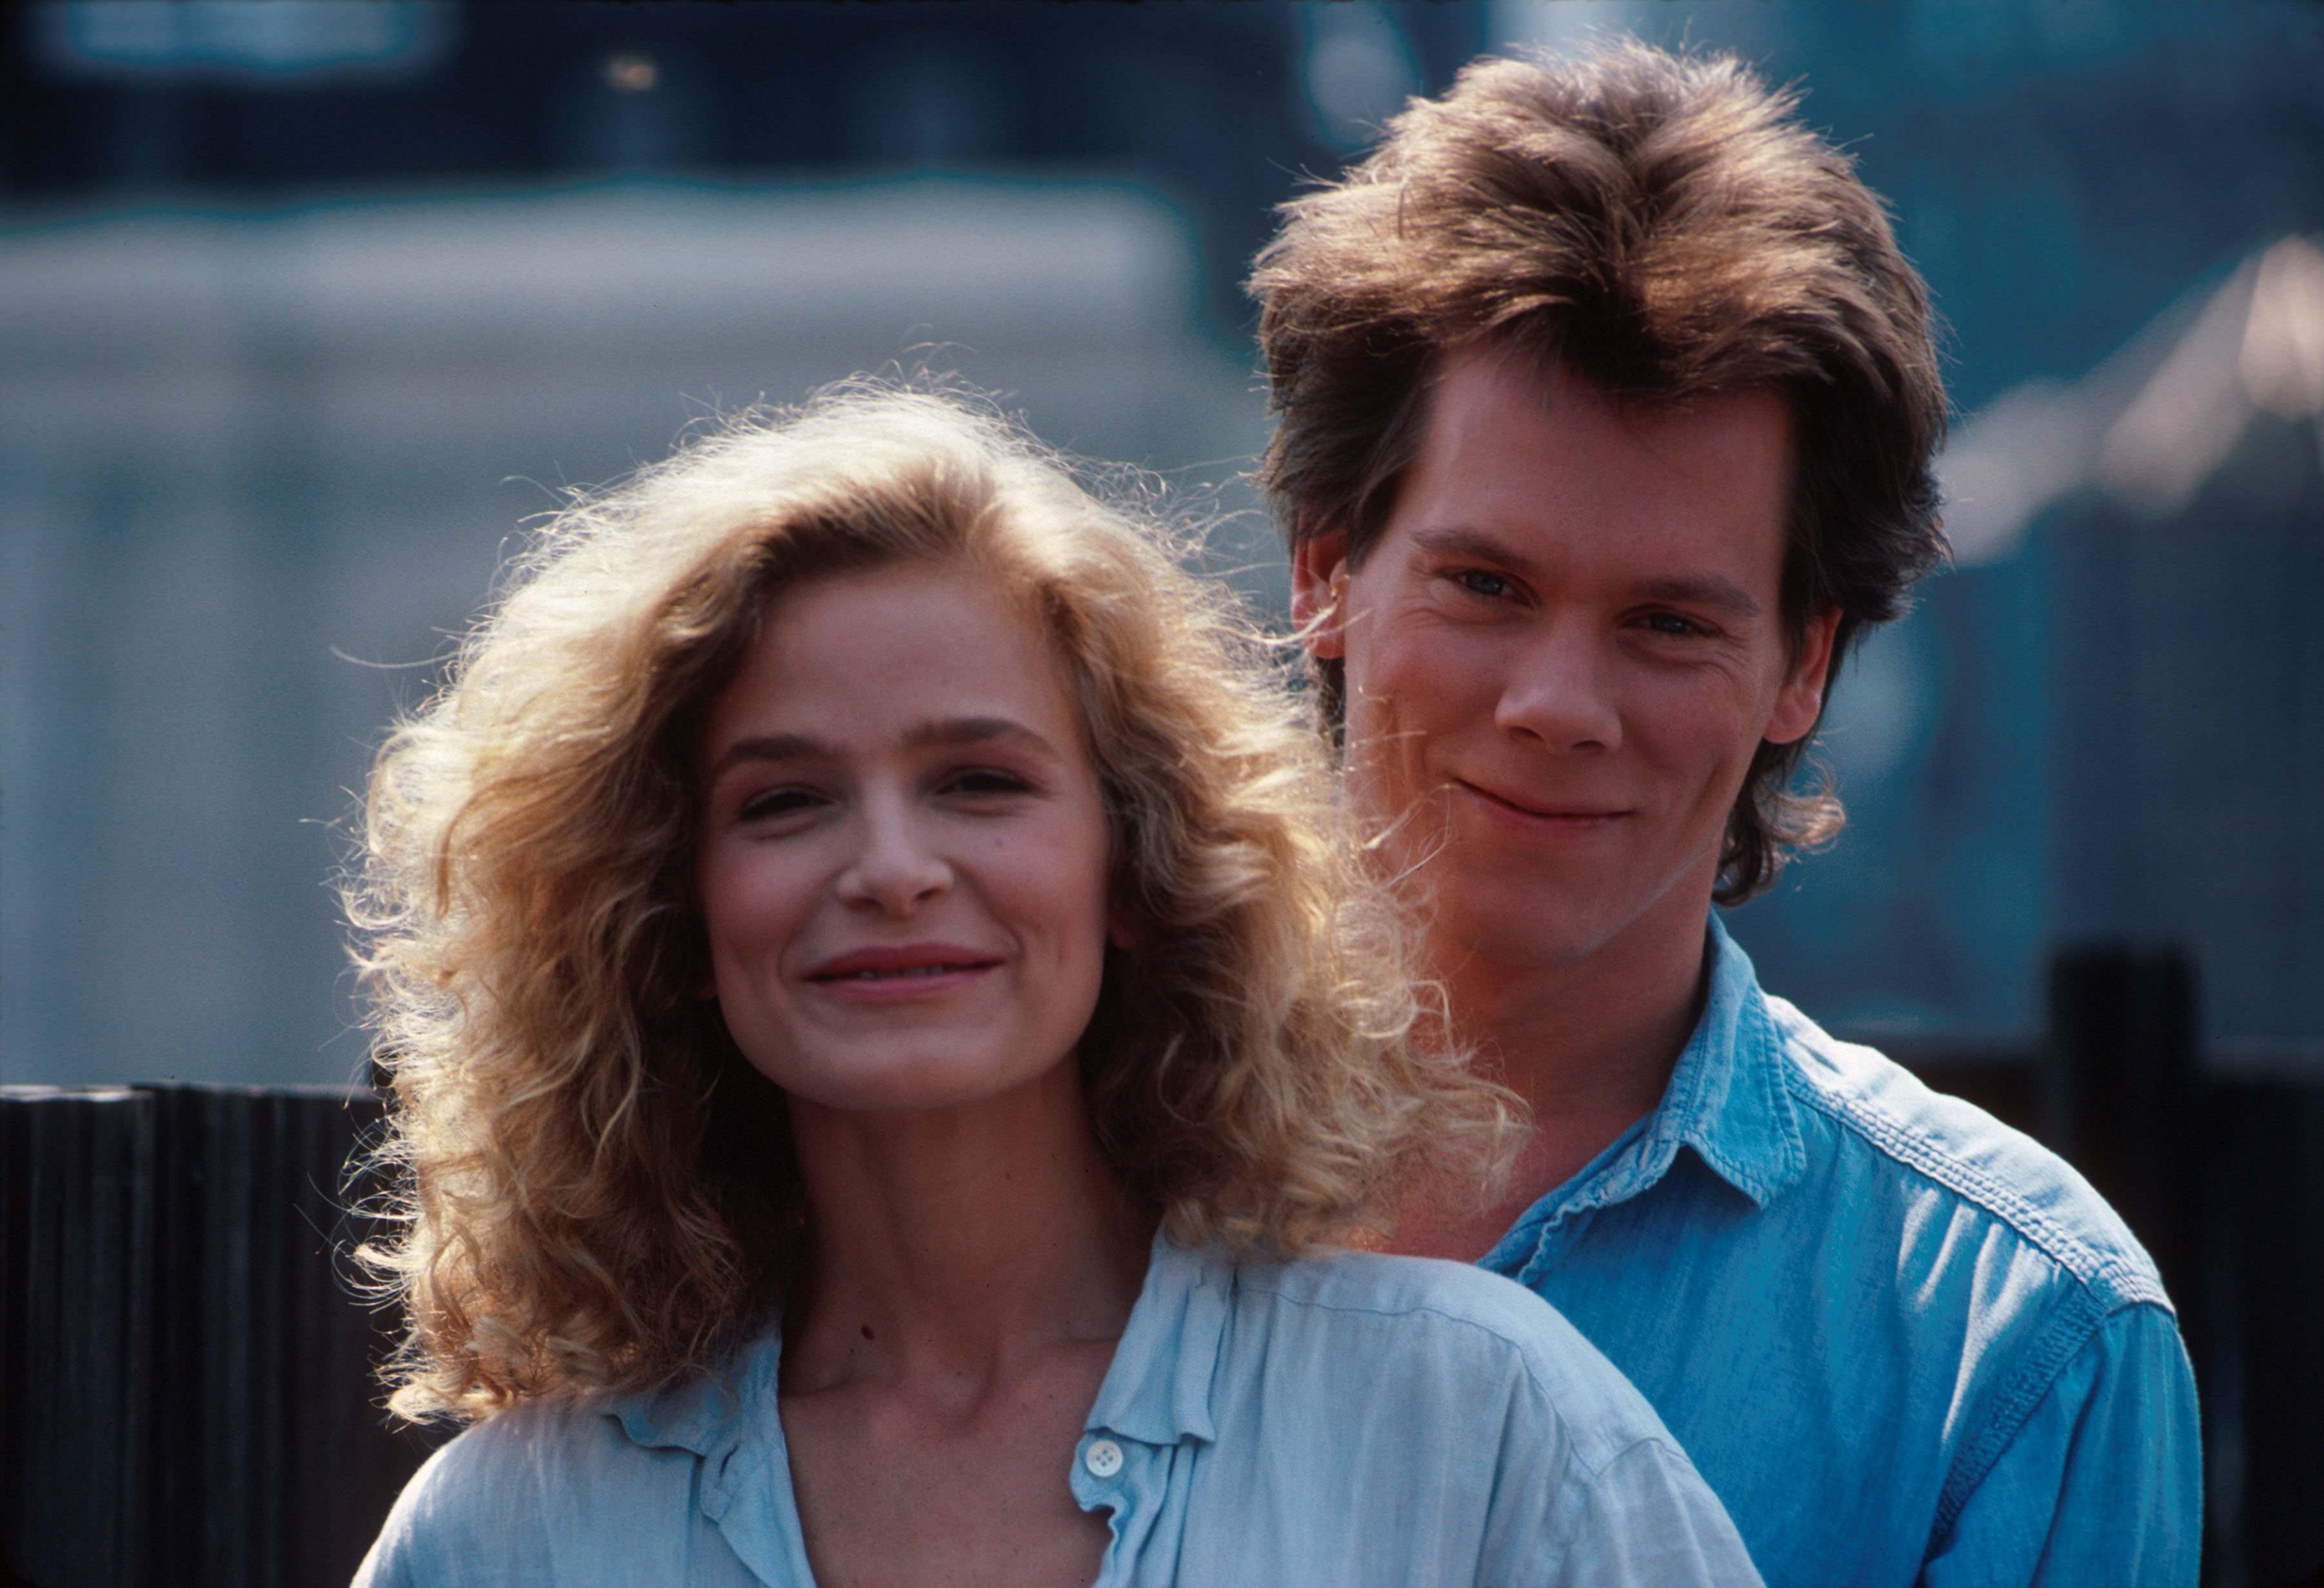 Kevin Bacon with Kyra Sedgwick on photo shoot in New York. August 1988 | Photo: GettyImages